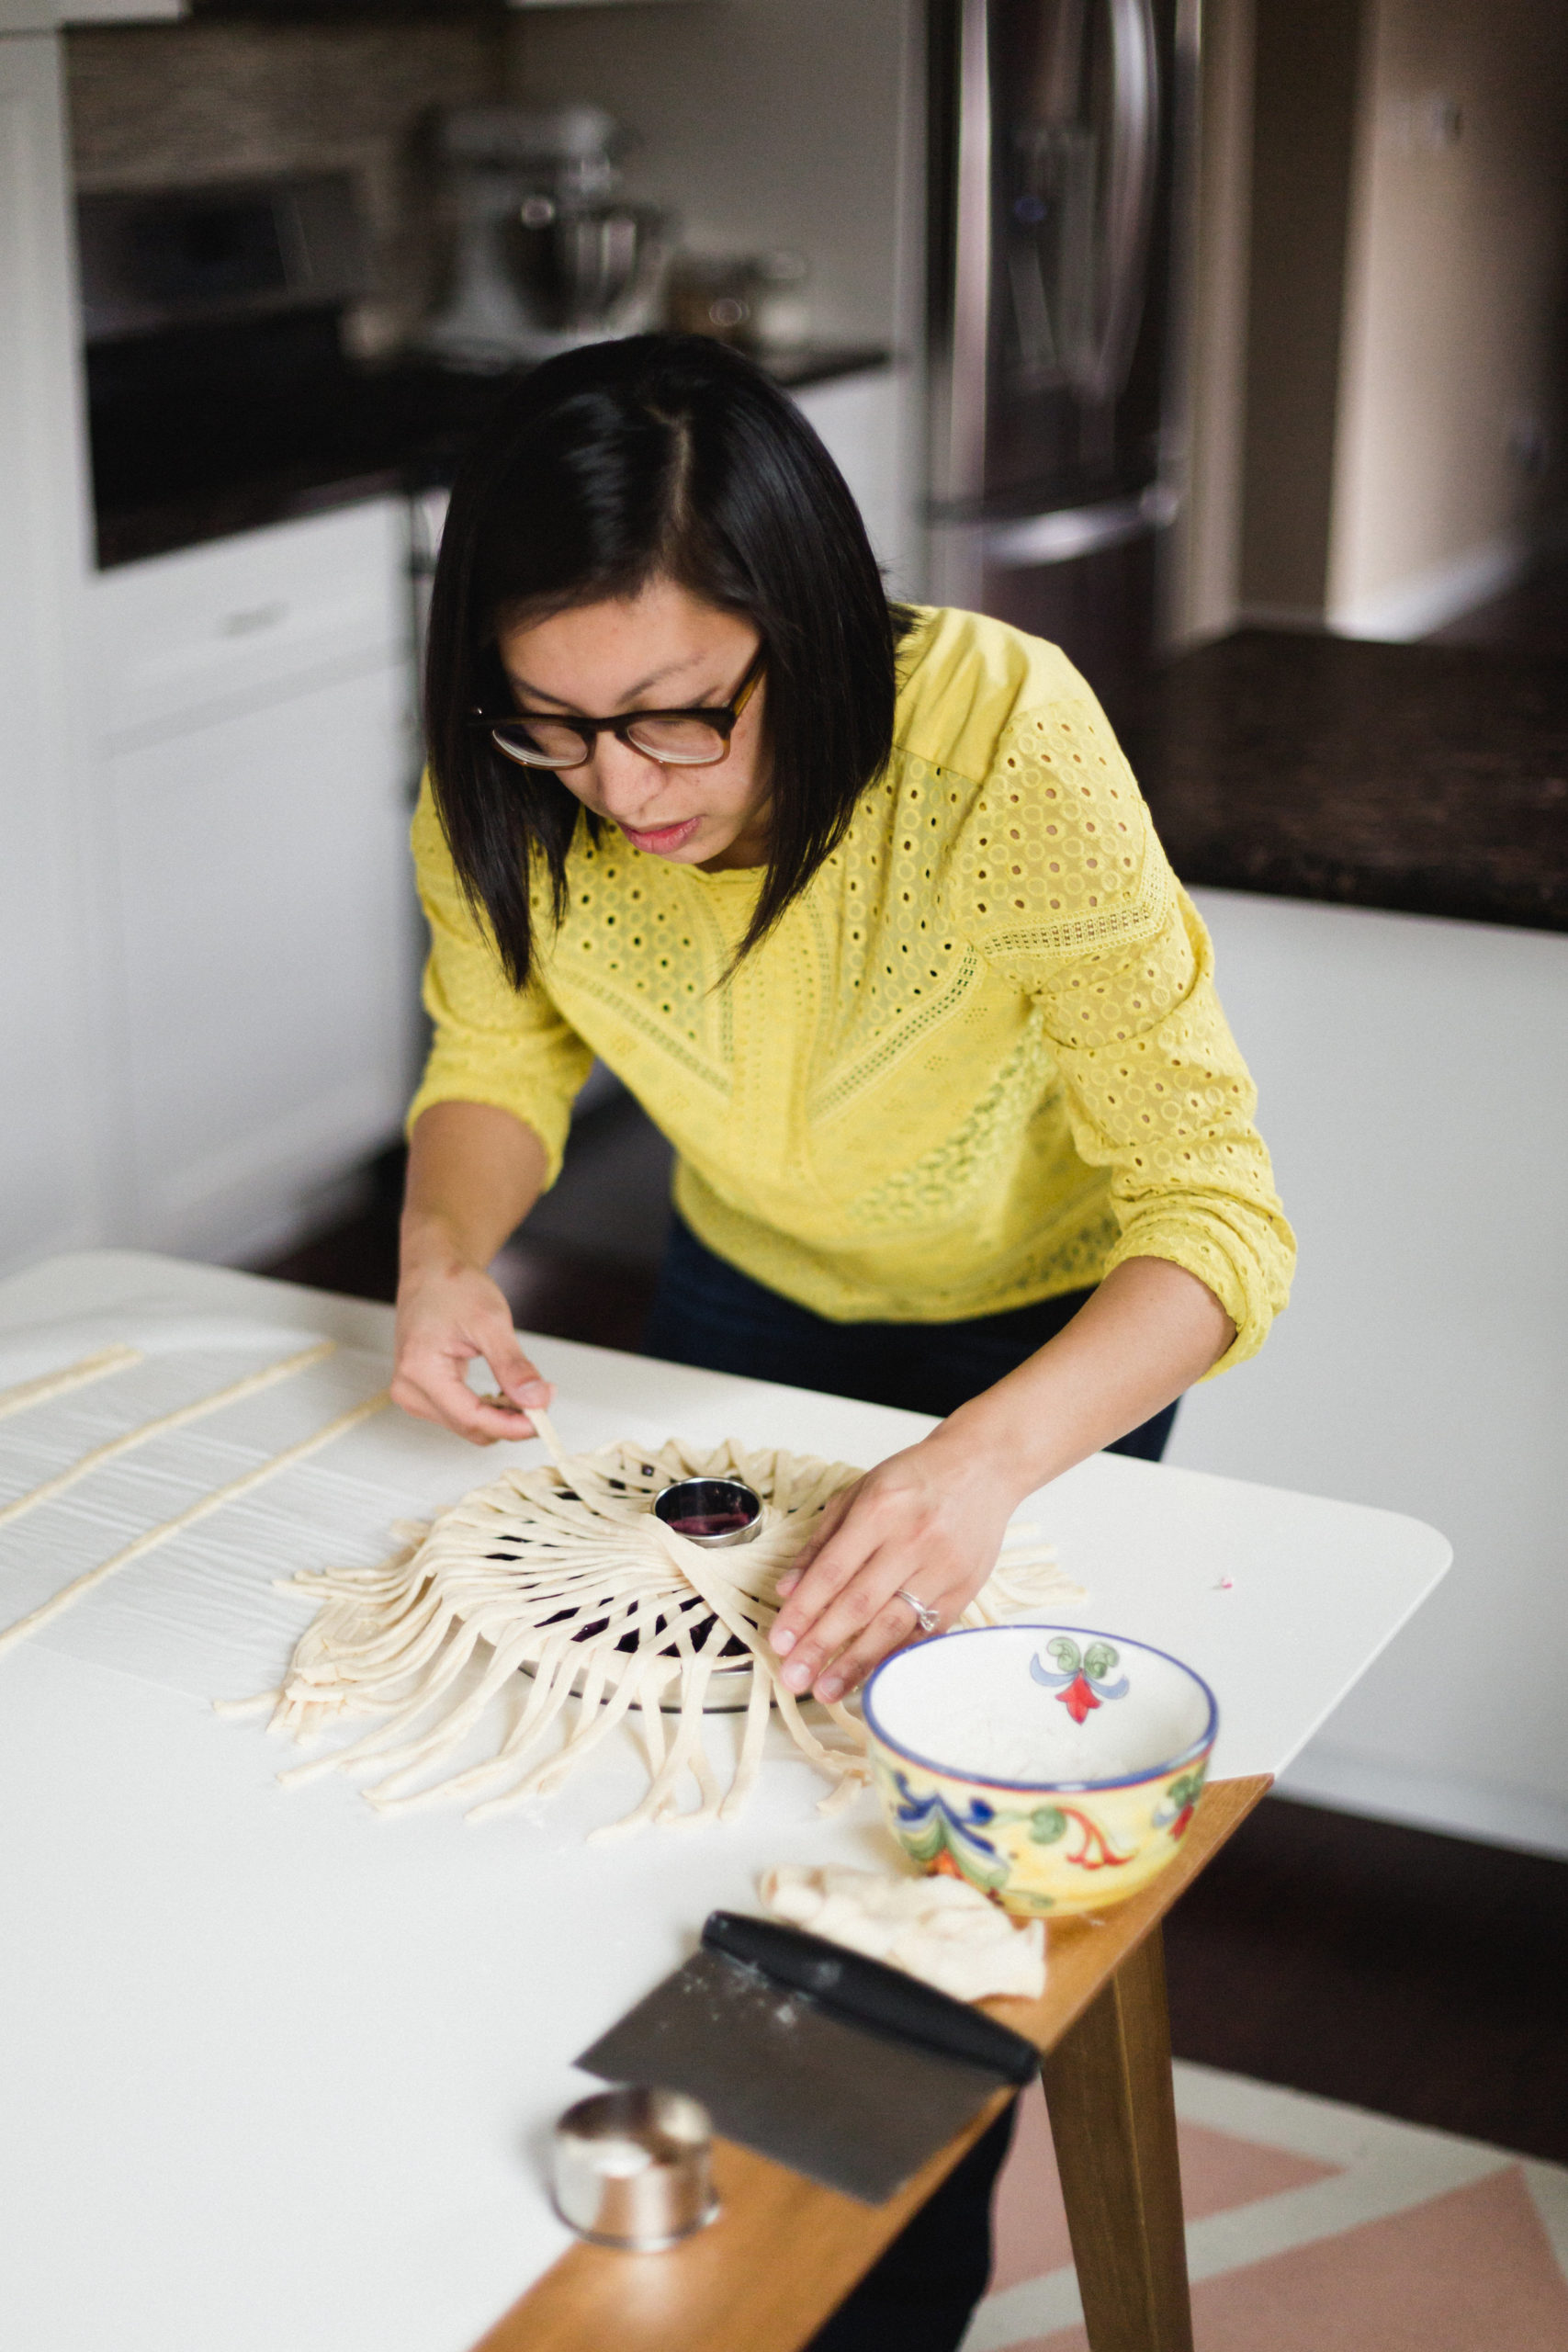 Lauren Ko leans intently over a pie, laying long strips of dough in an intricate pattern over the topping.